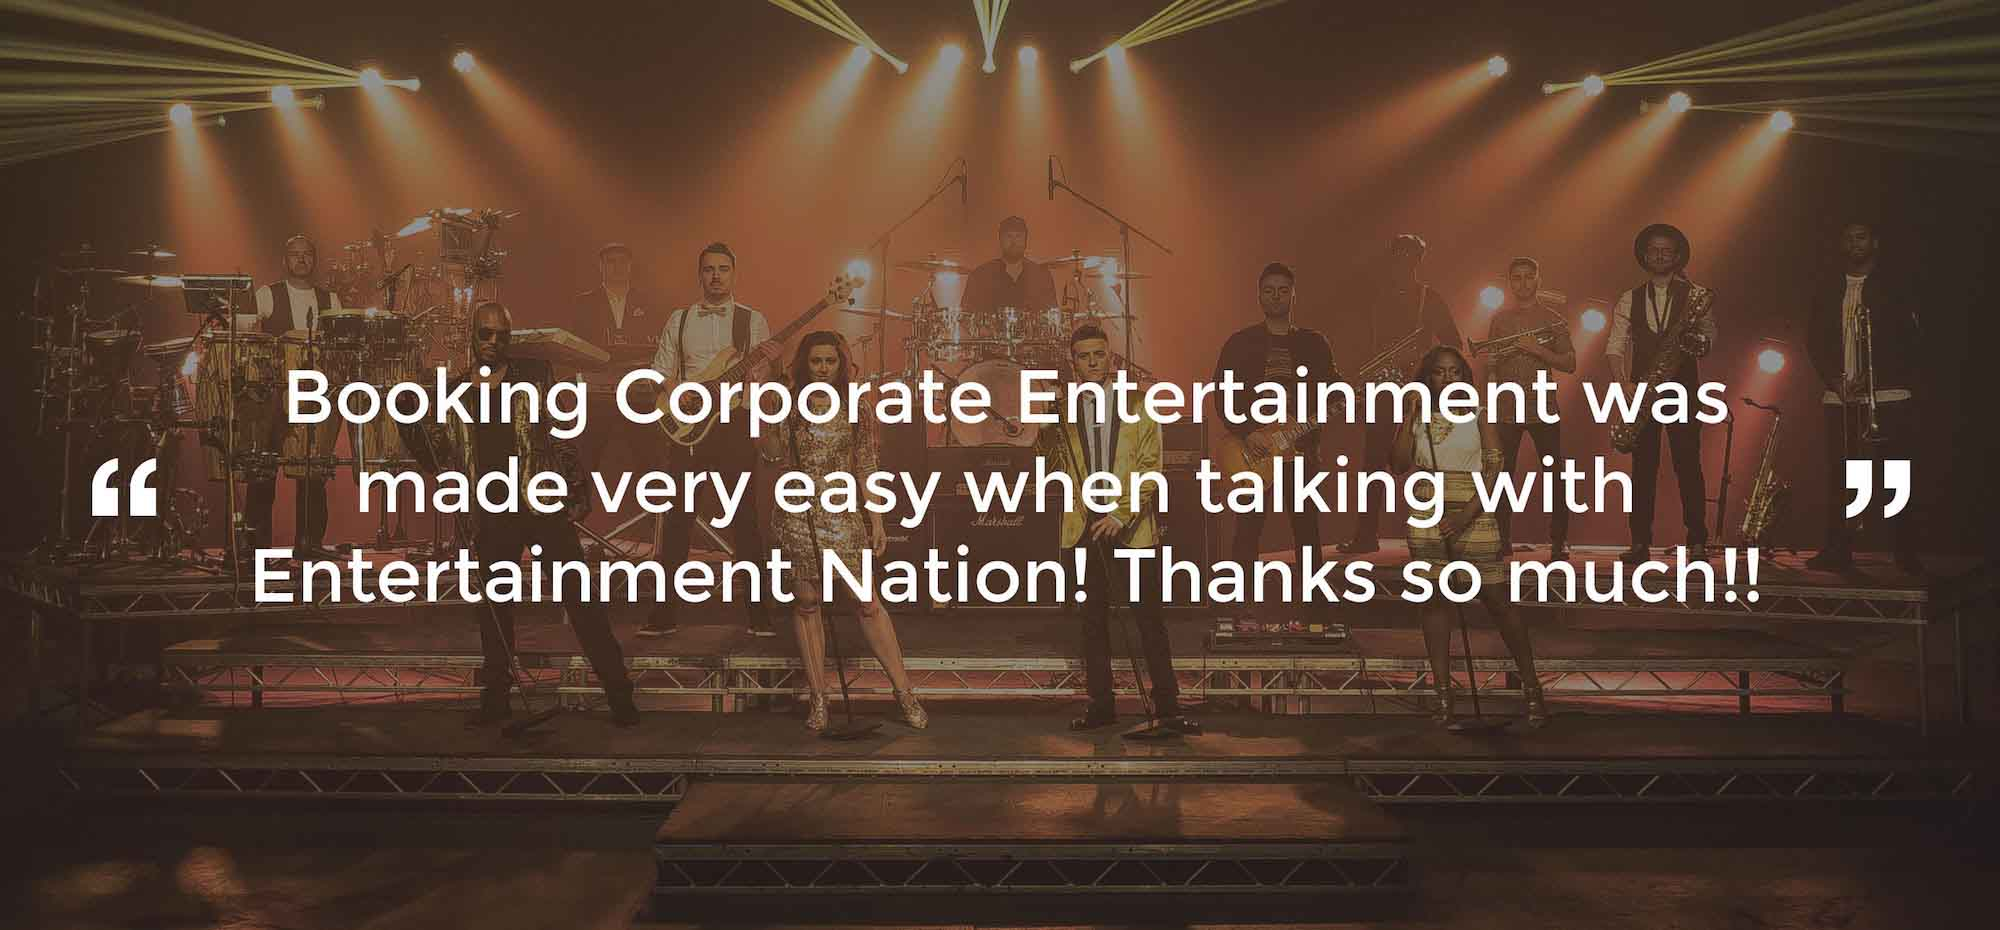 Review of Corporate Entertainment Bath